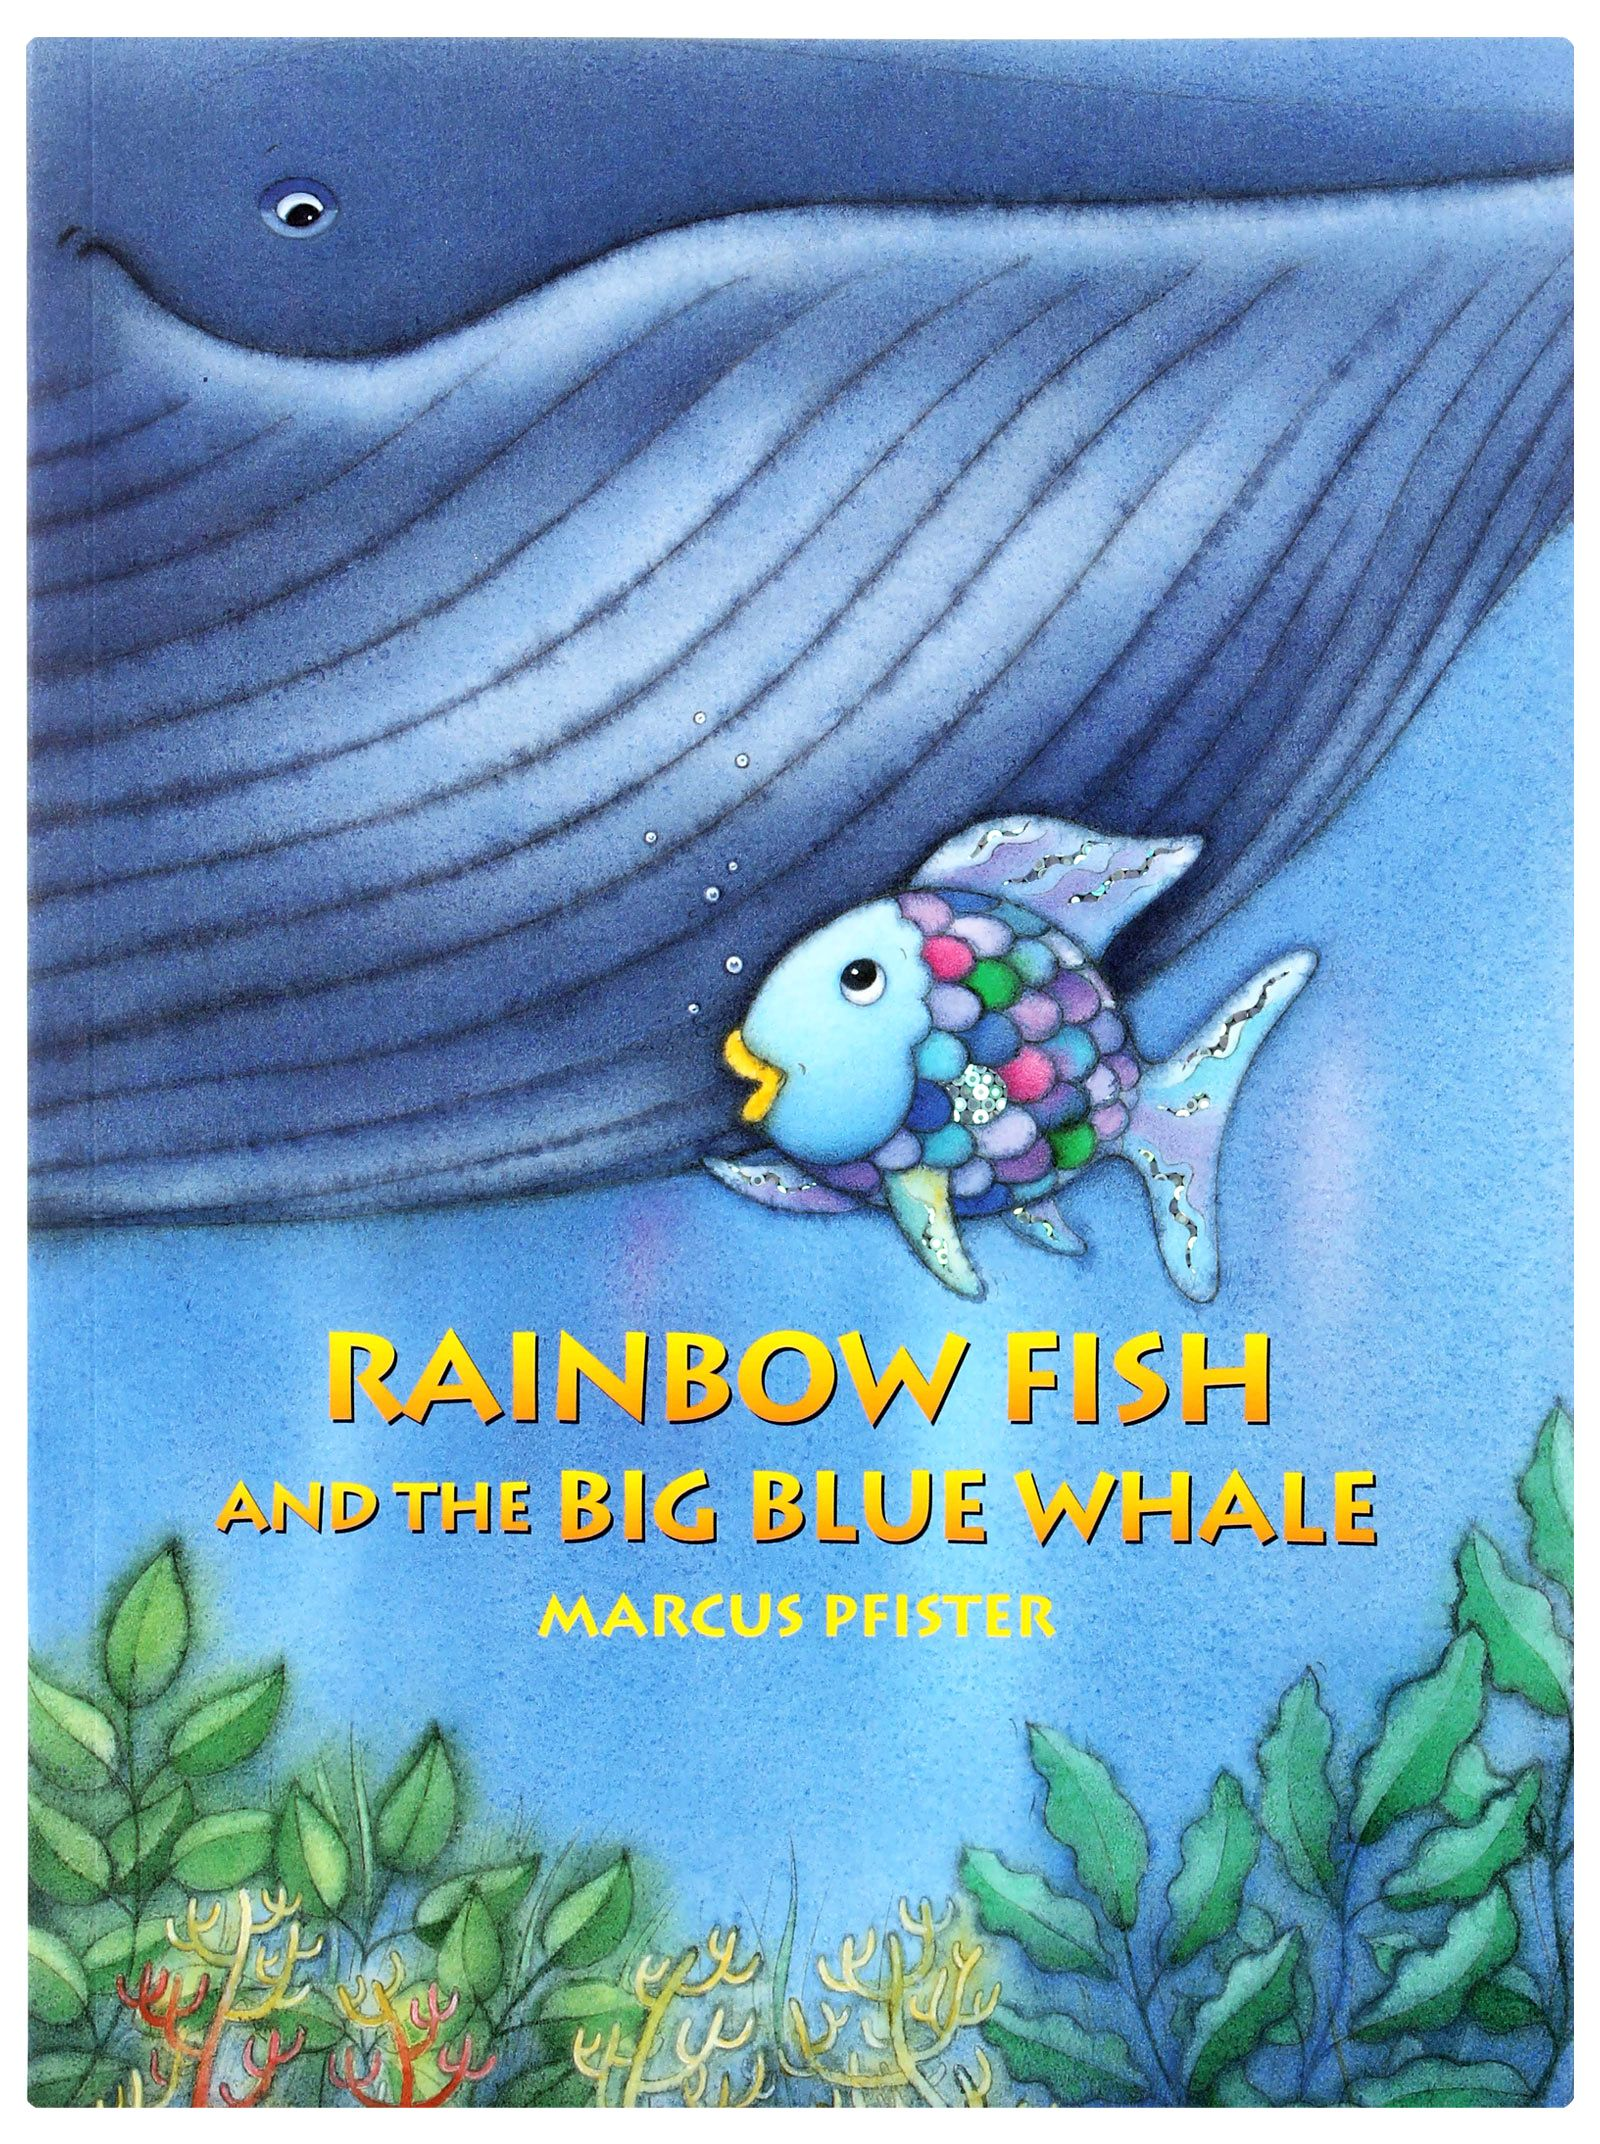 Rainbow Fish Book Read Online Rainbow Fish Book Amazon Small